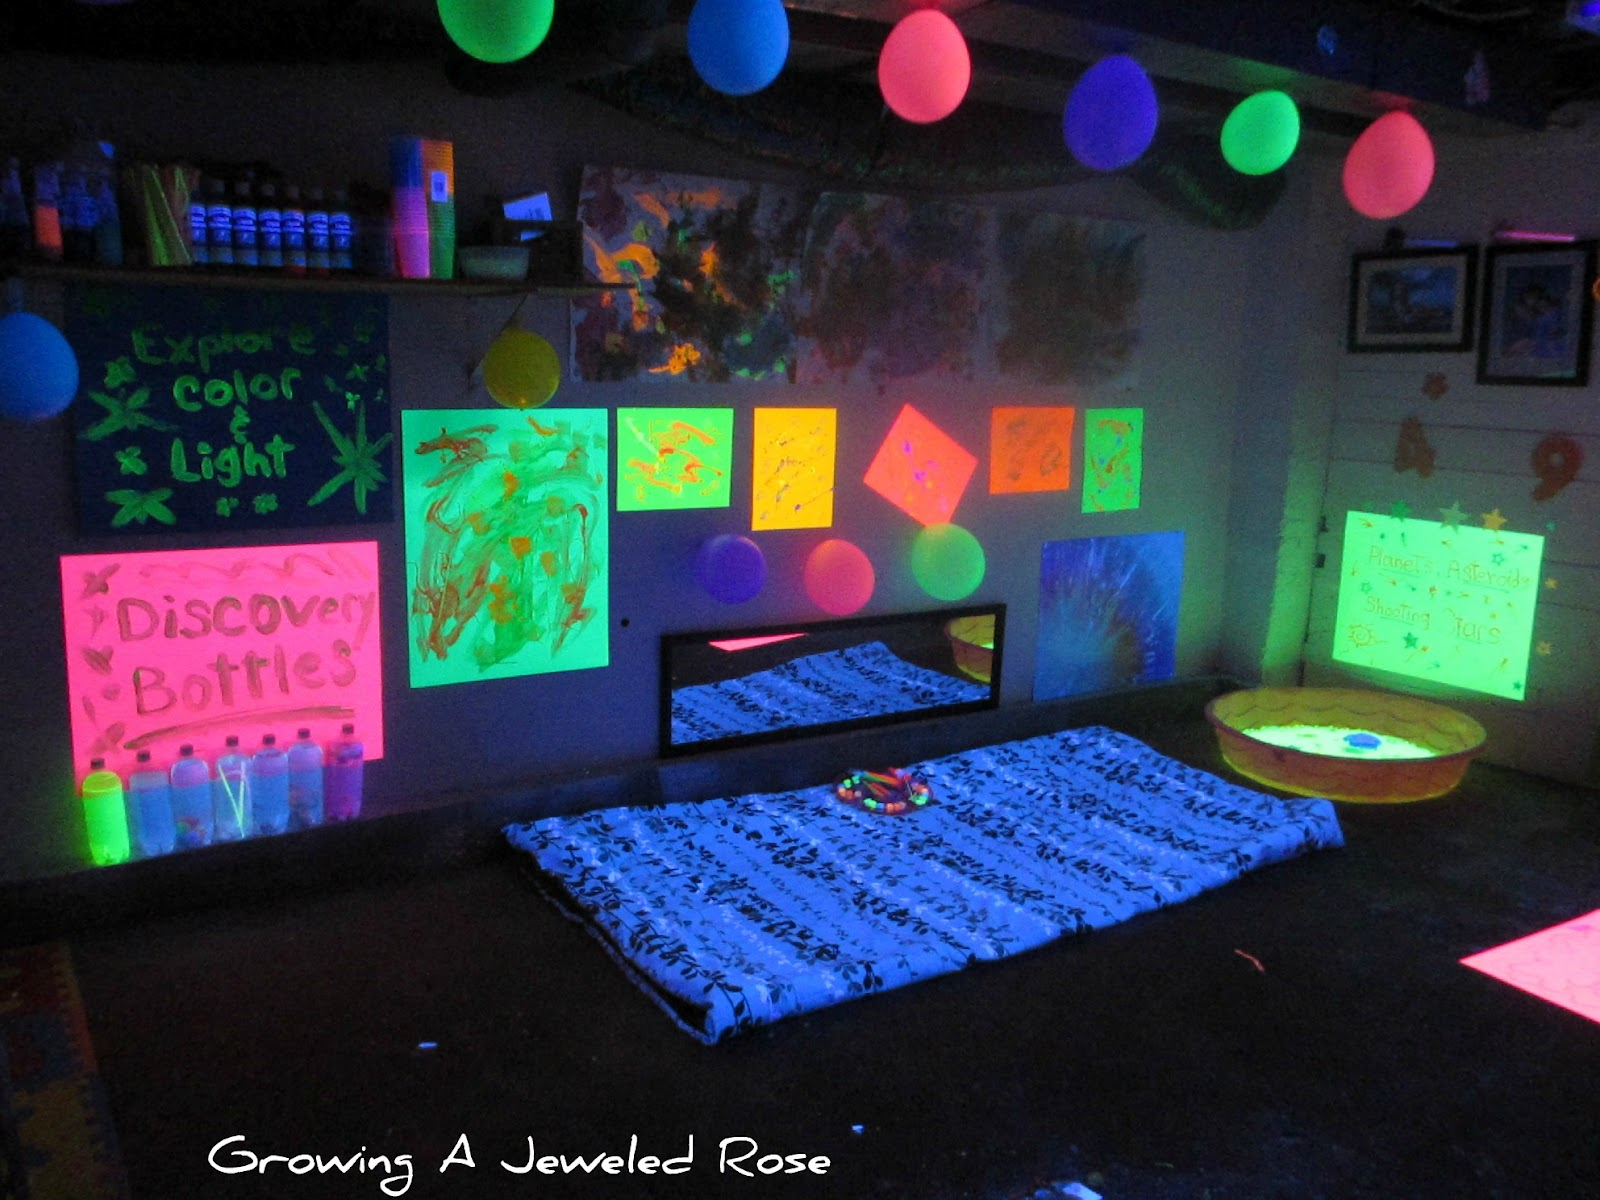 Black Light Themed Party for Kids | Growing A Jeweled Rose for Black Light Bulb Room  193tgx